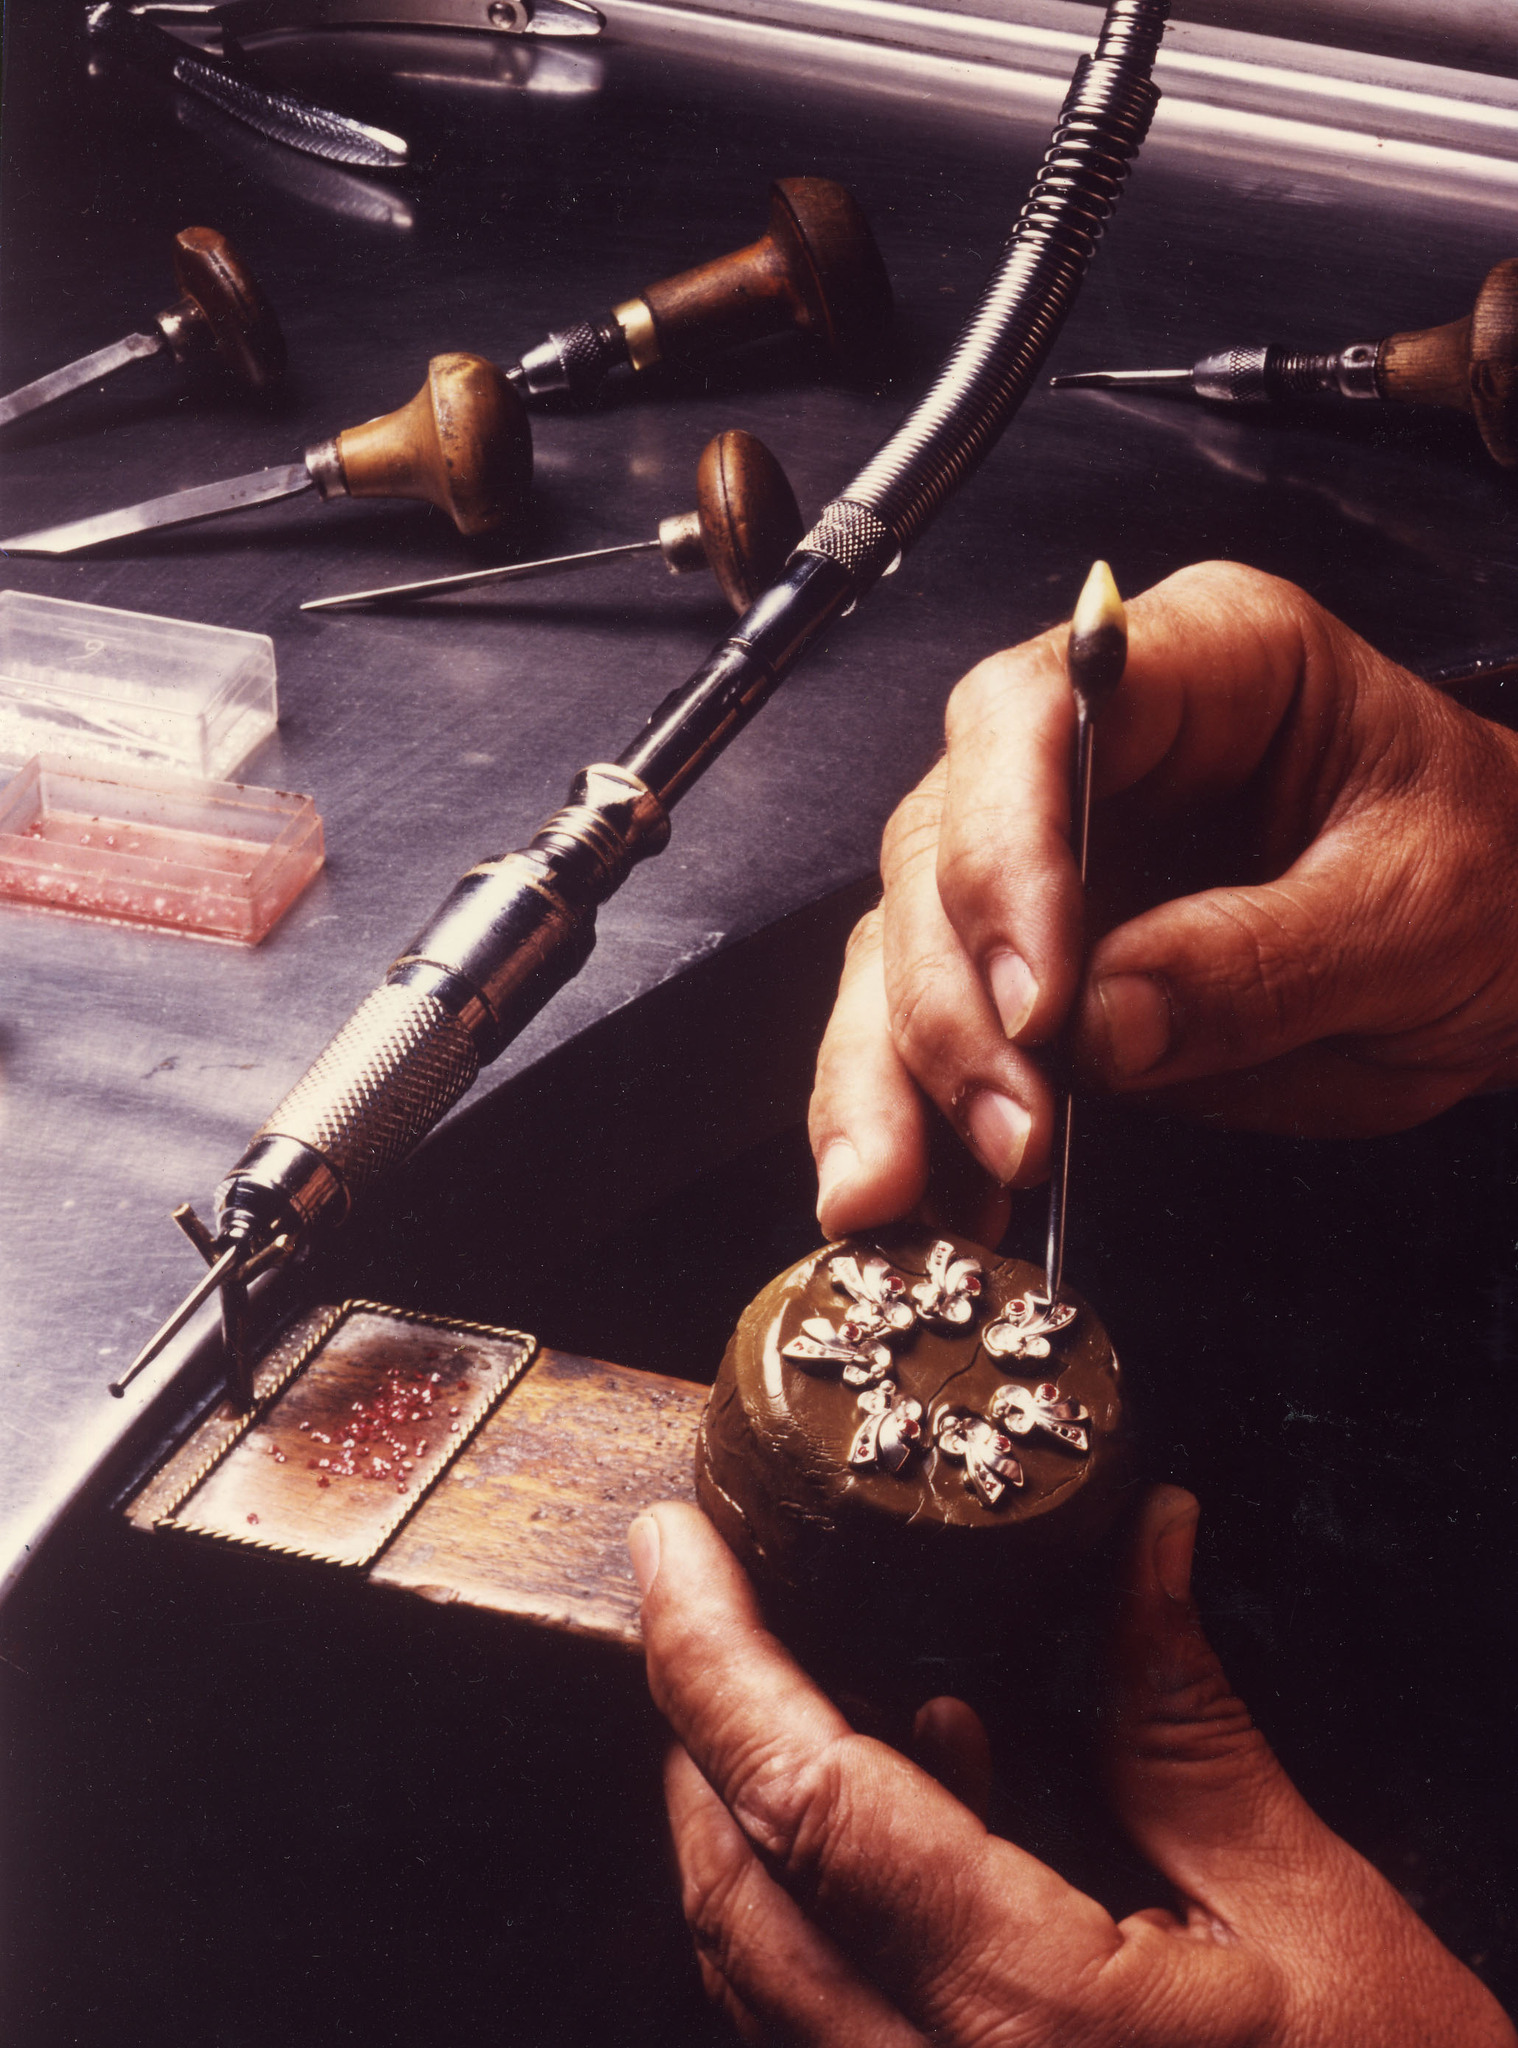 START OF THE CREATION OF PIECES OF SILVER